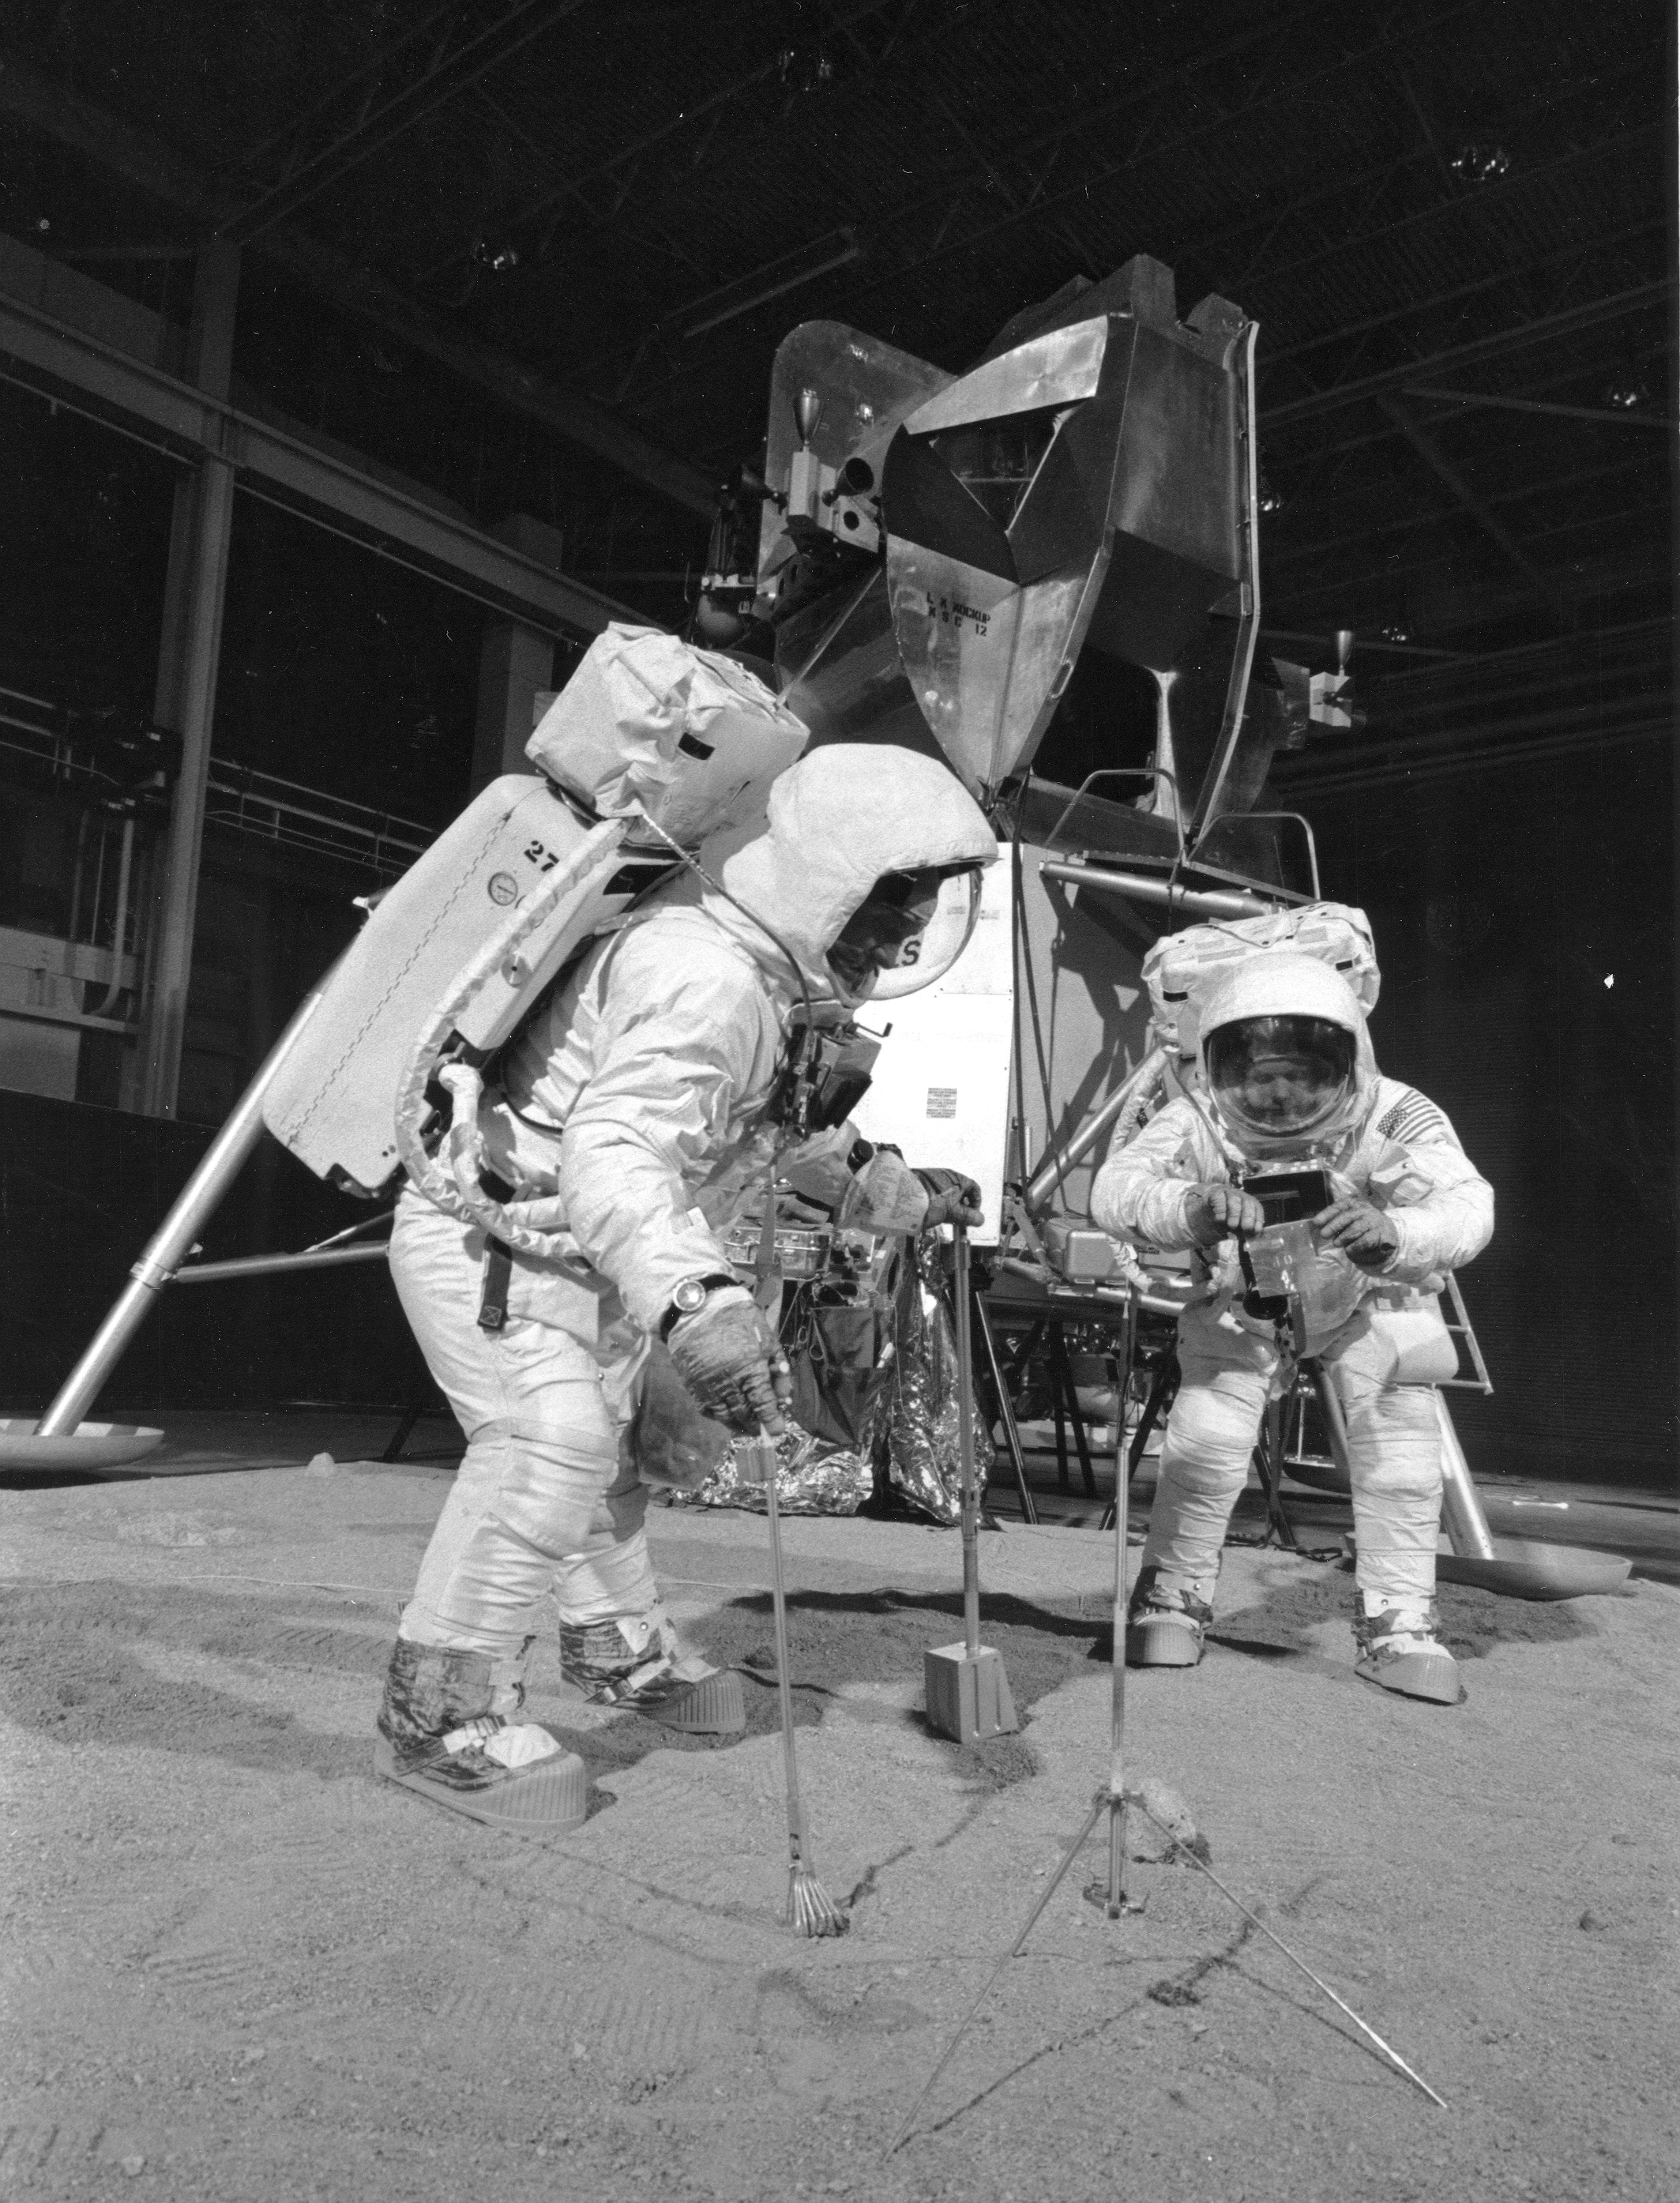 moon landing exercise It has been more than four decades since the first men landed on the moon on july 20, 1969 test your memory of the moon landing with this quiz.